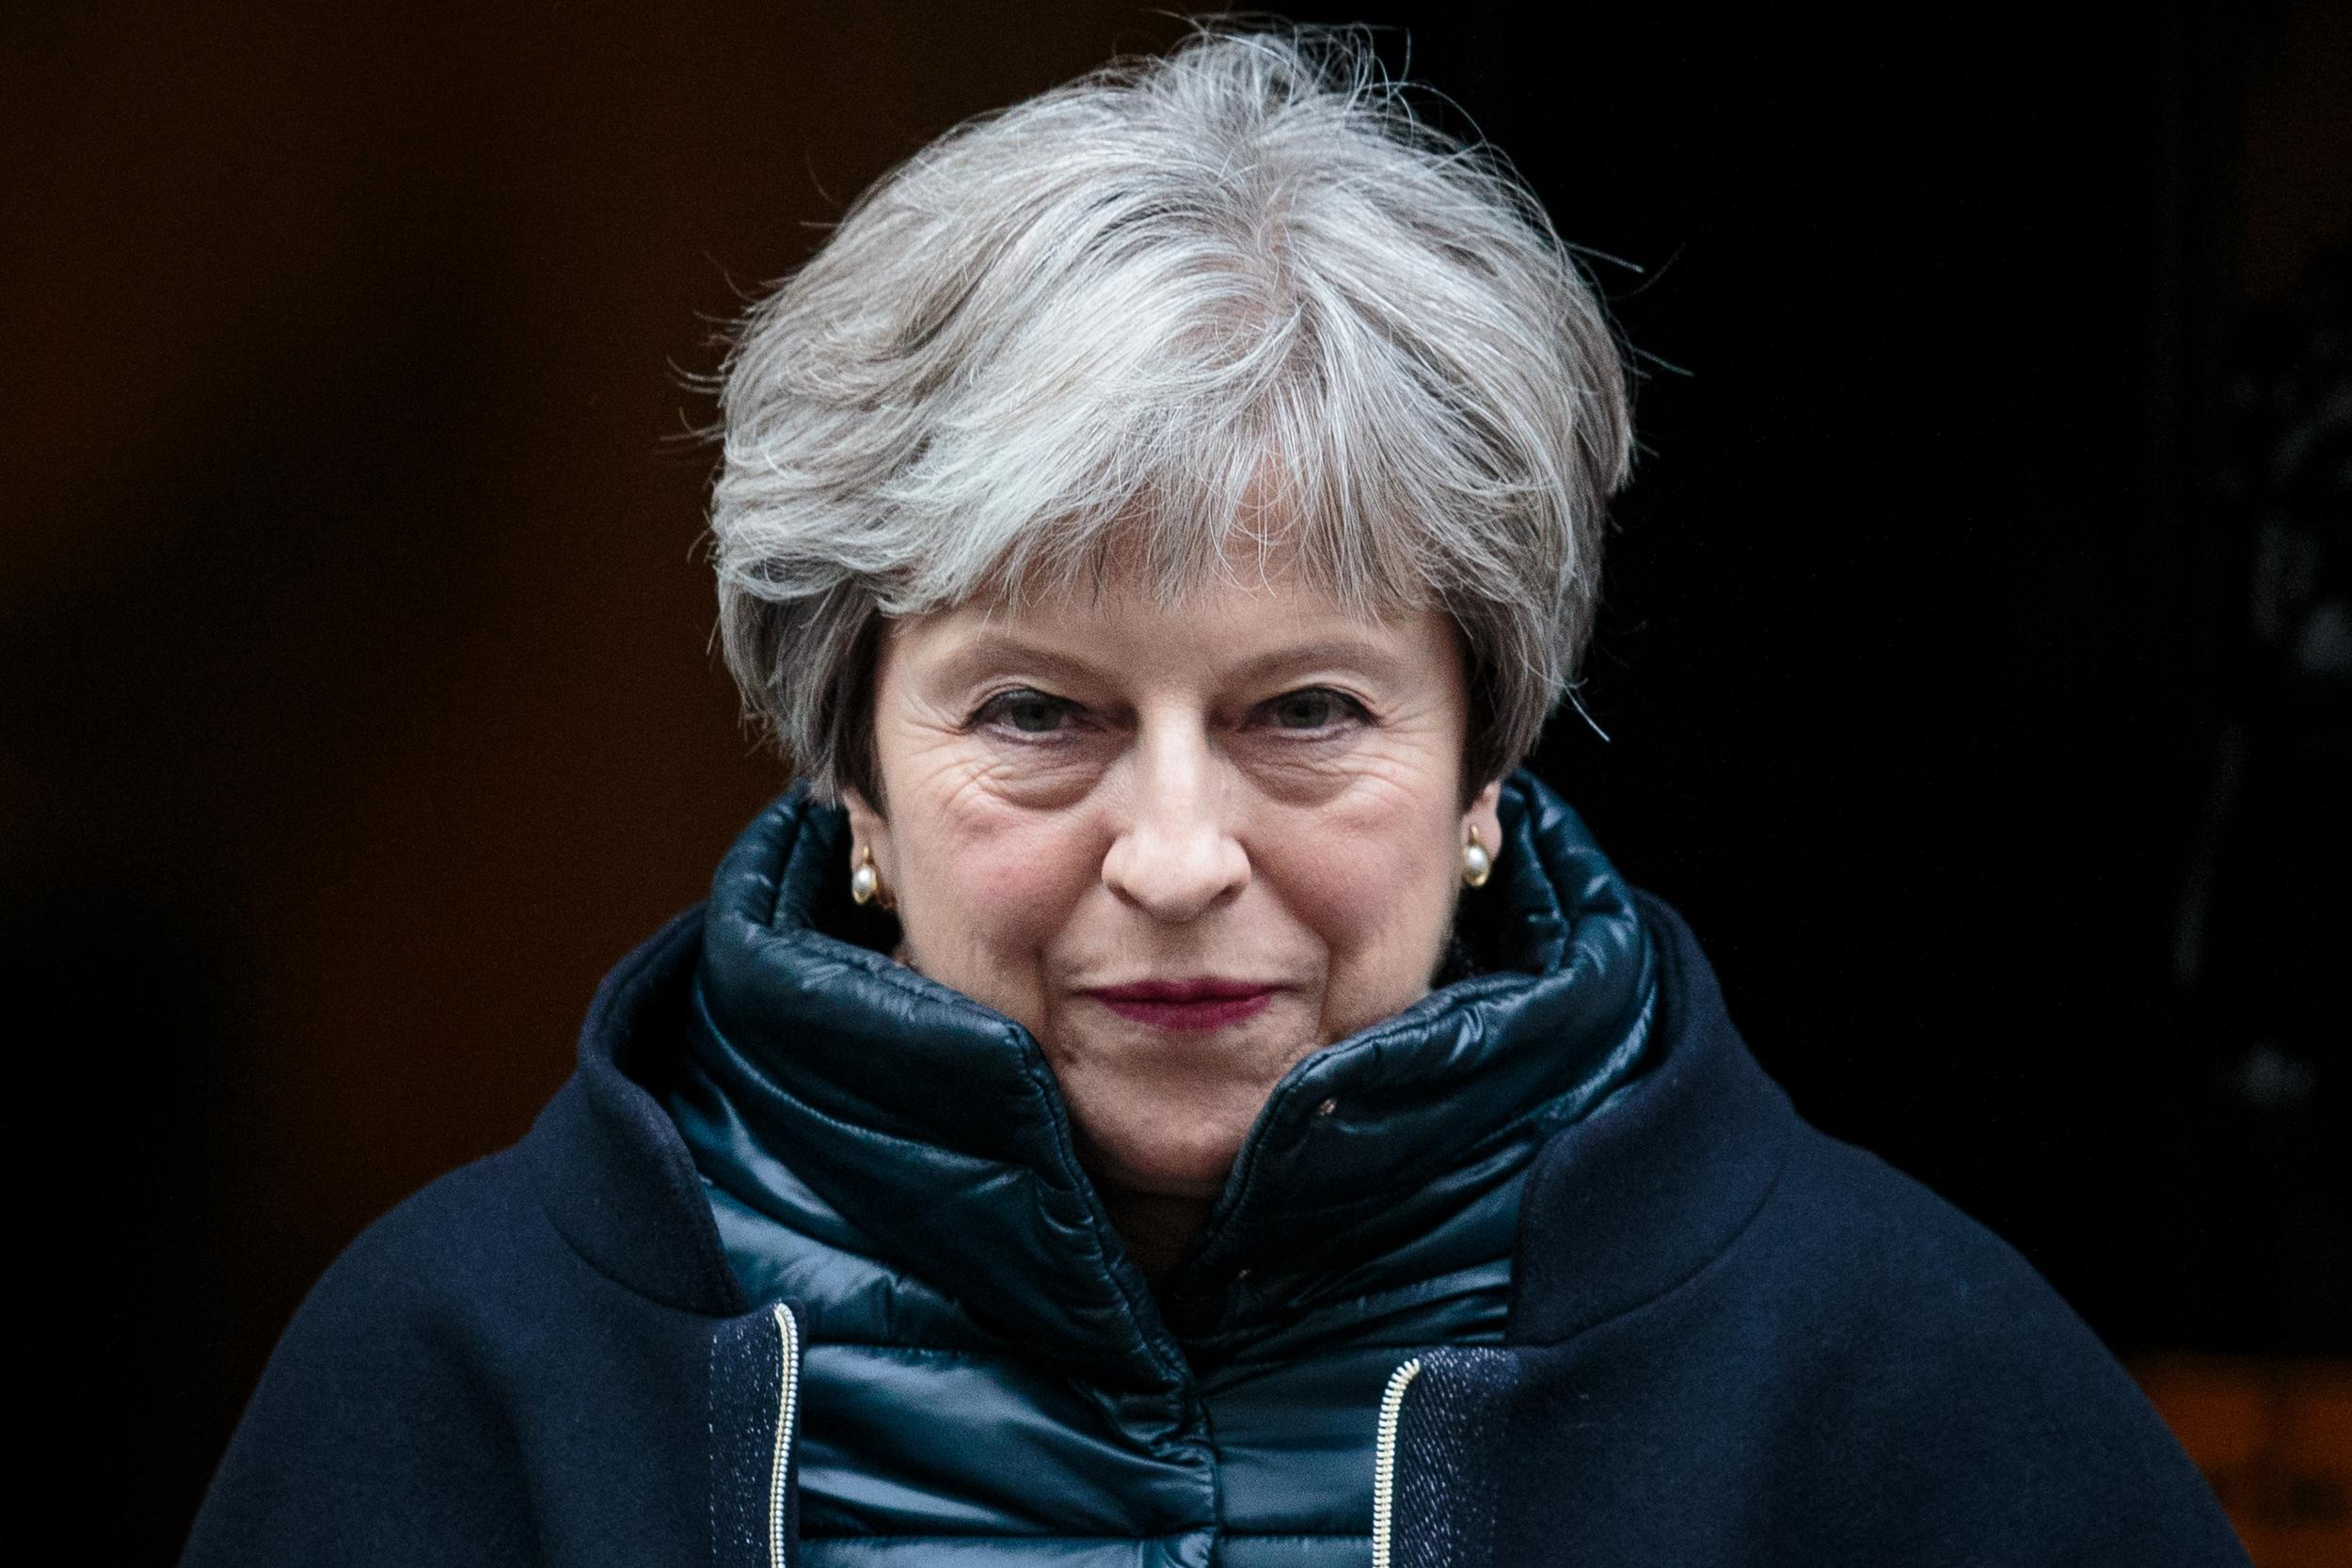 Government minister suggests Theresa May should consider halting Brexit if damning impact assessment is true